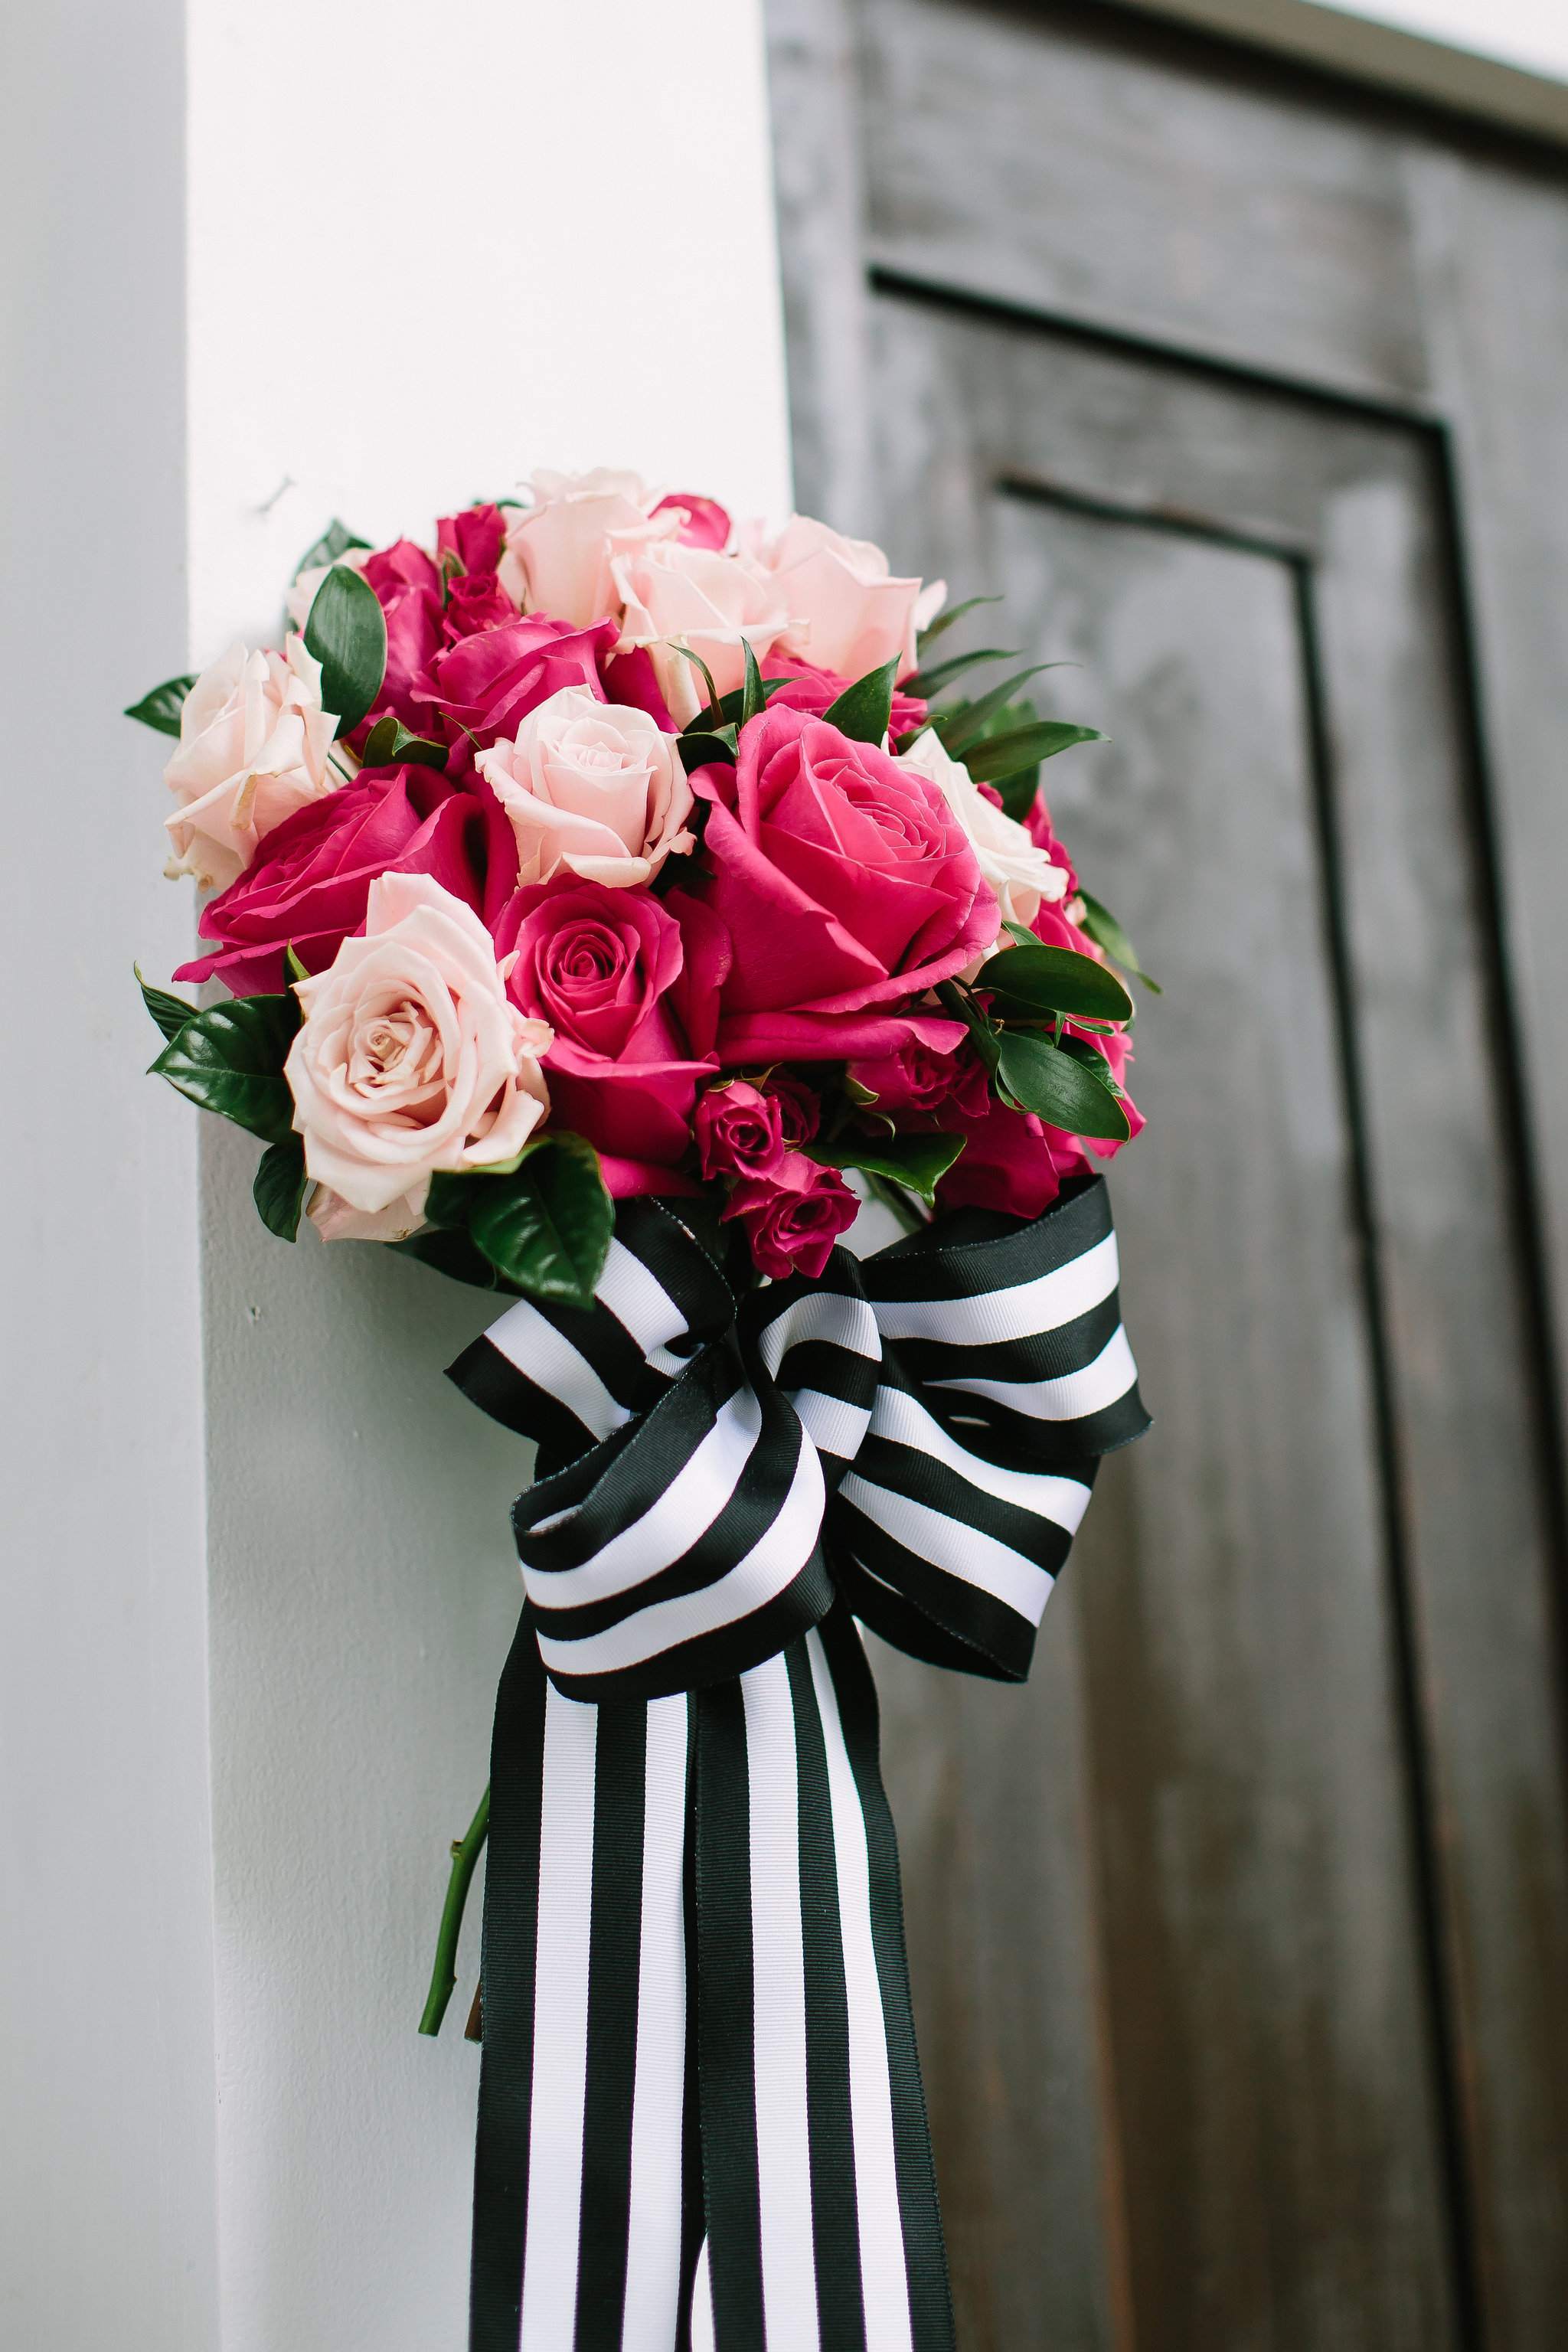 Classic black and white stripe with touches of pink floral were our theme.